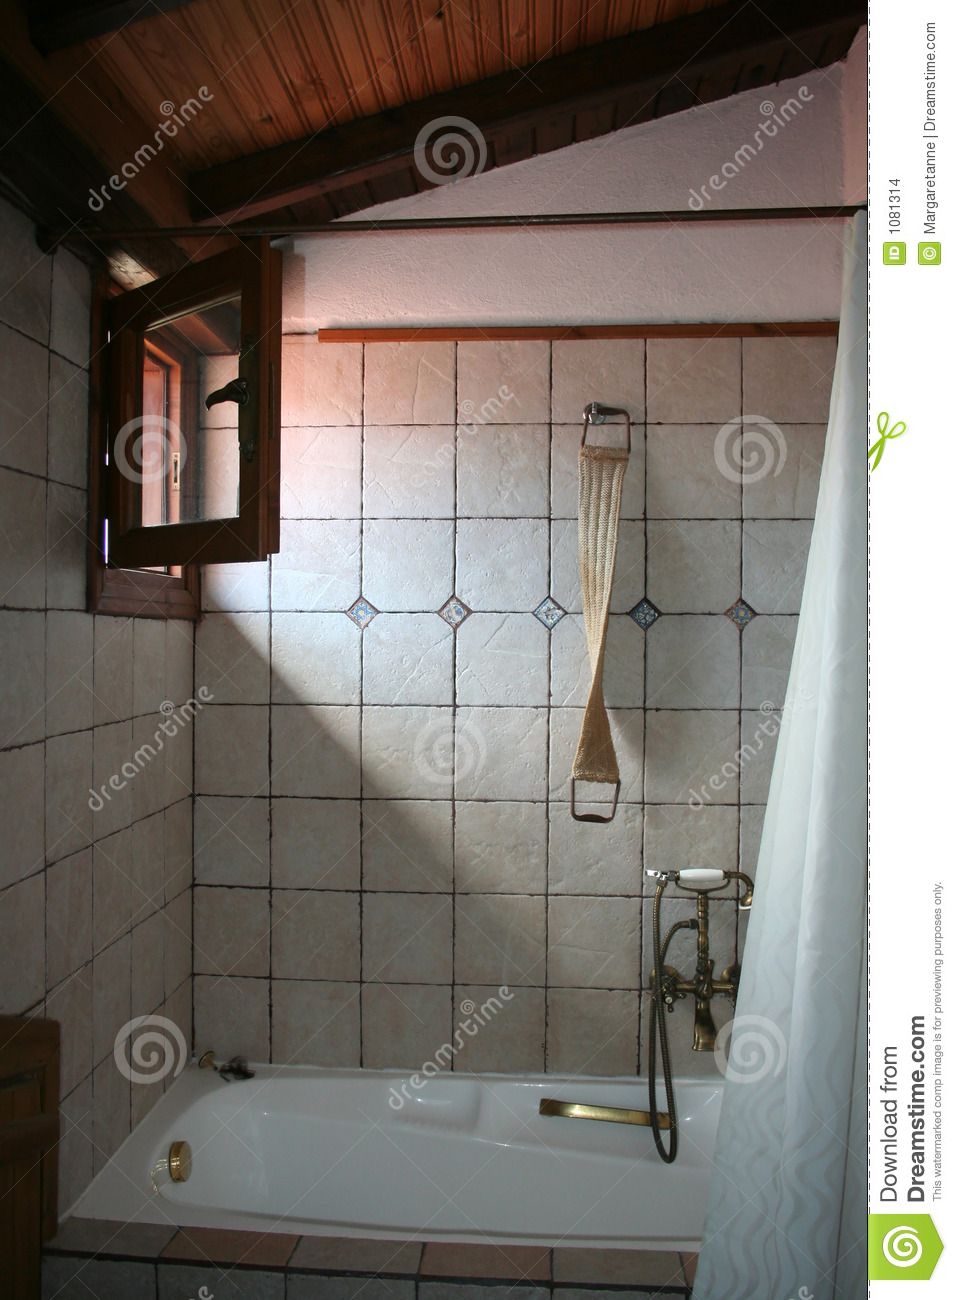 Rustic Bathroom Lit By Sunlight From Open Window Stock